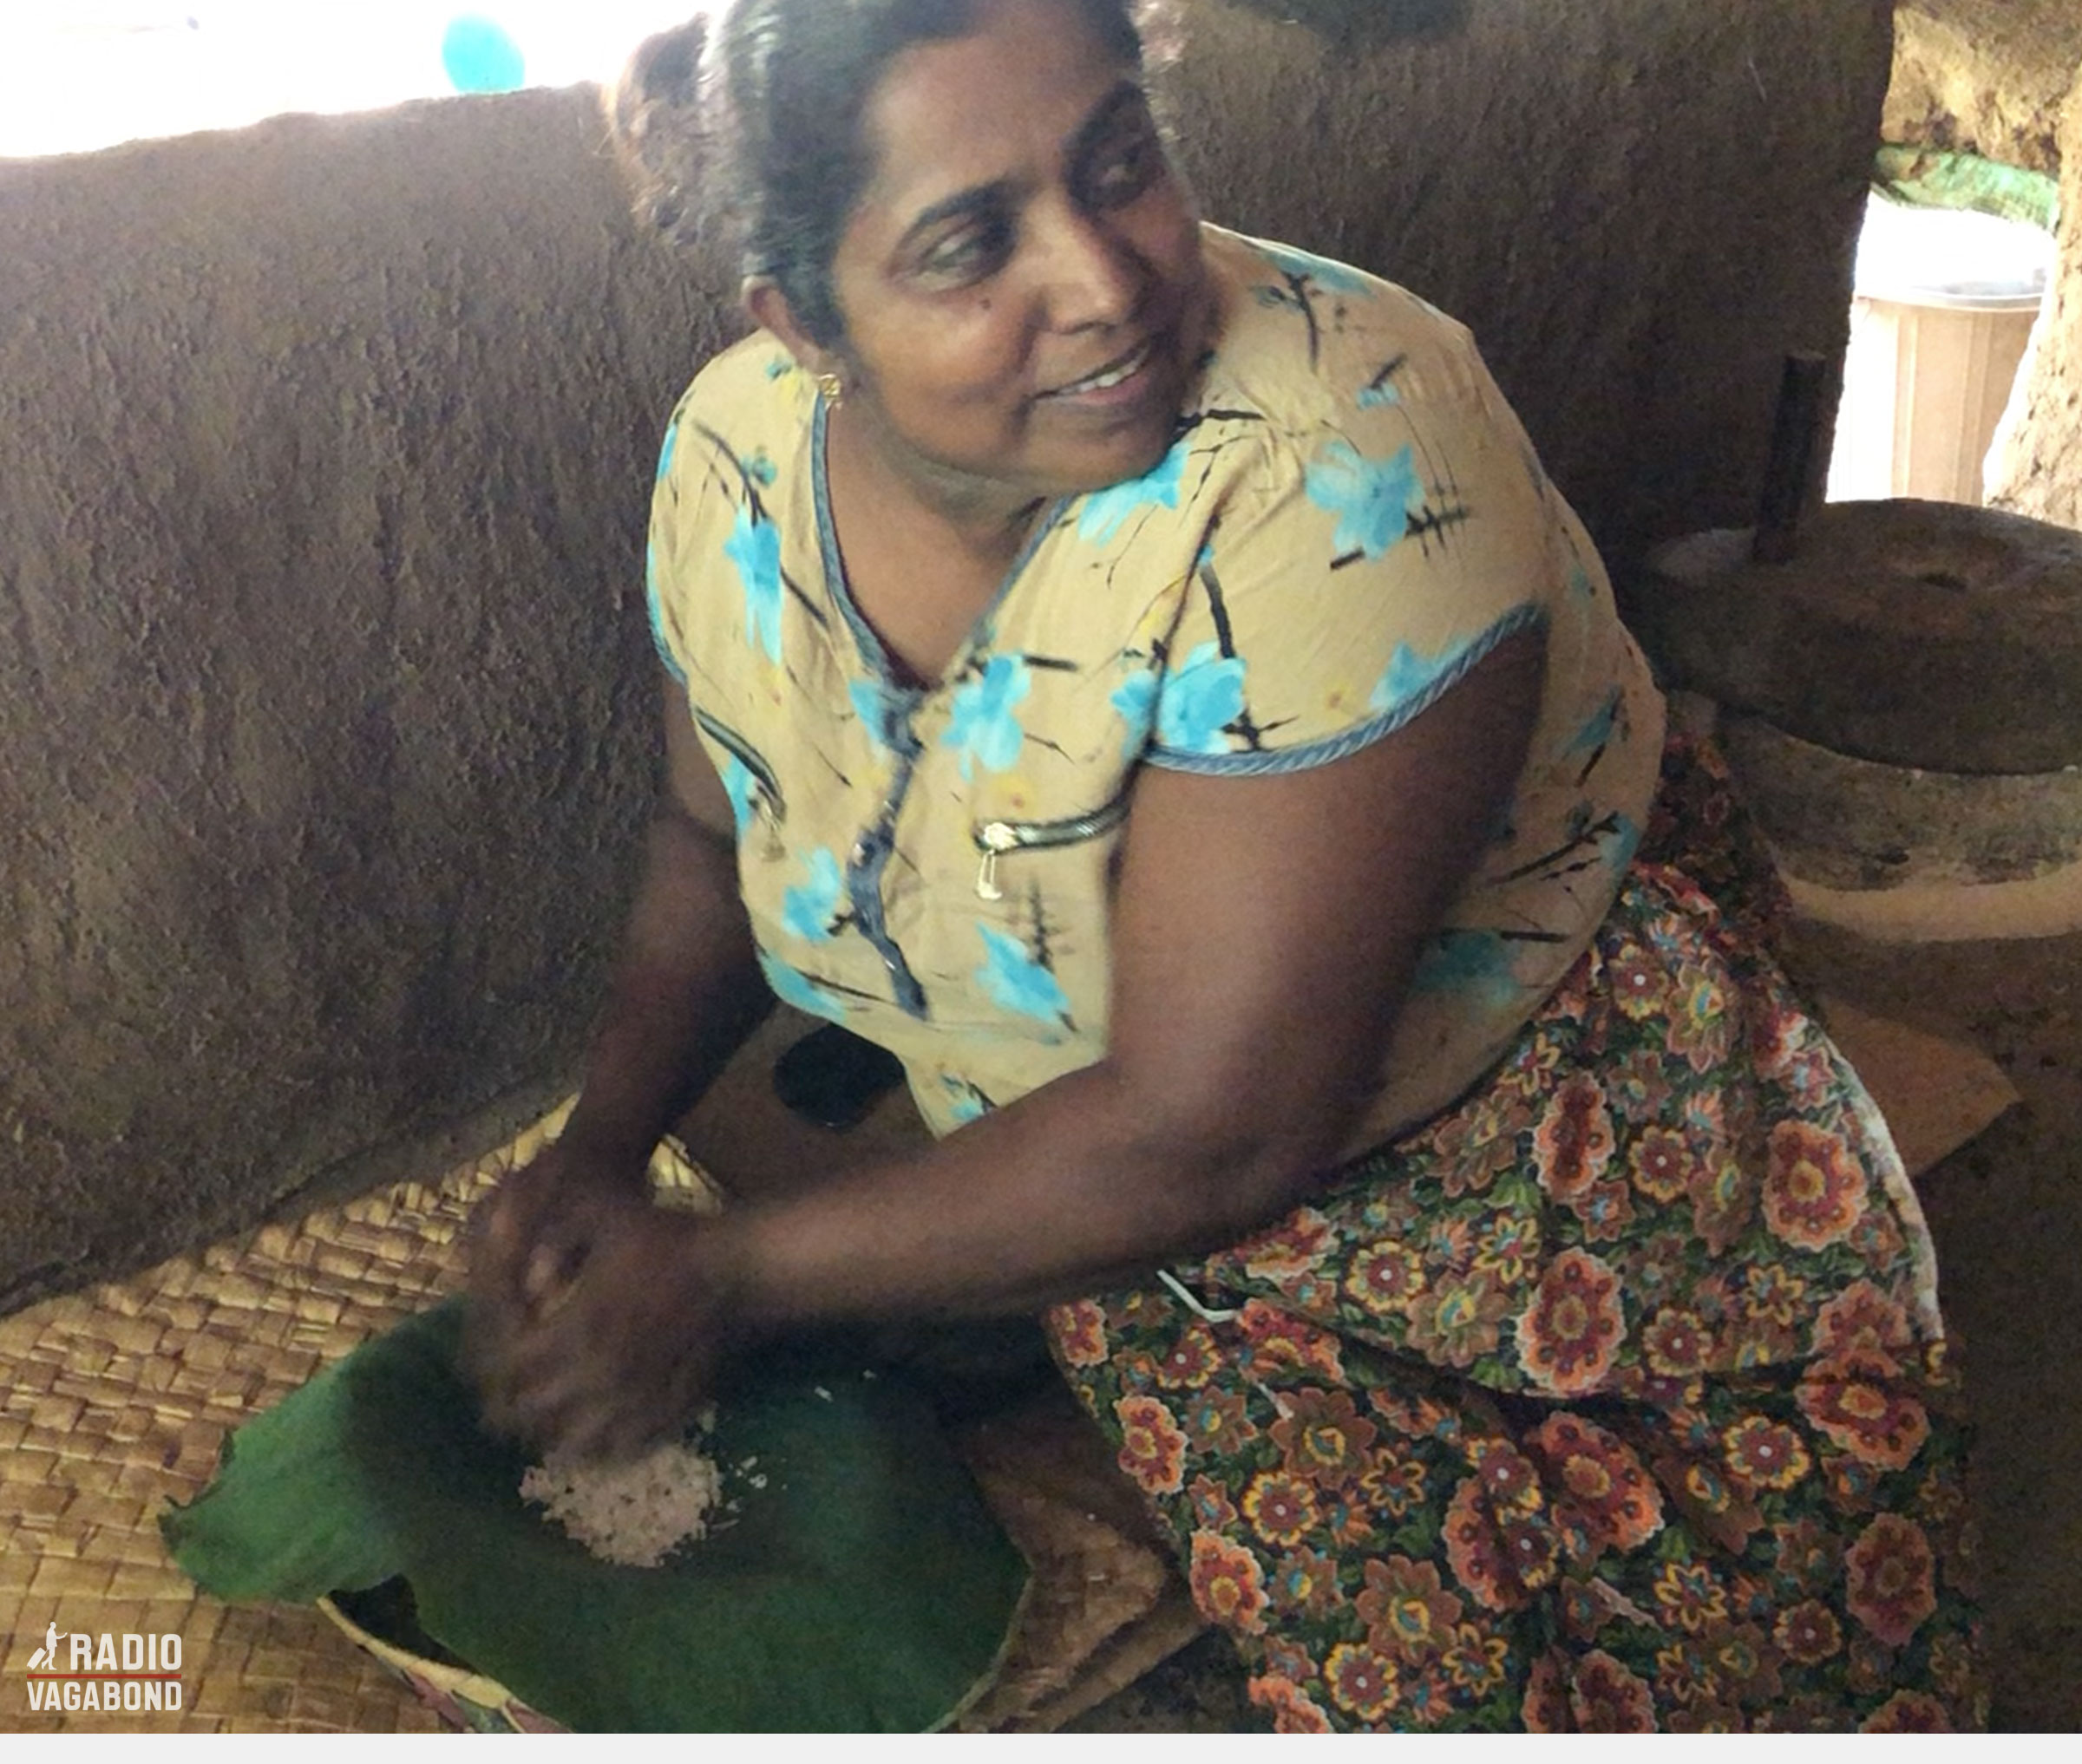 She starts grinding the inside of the coconut.